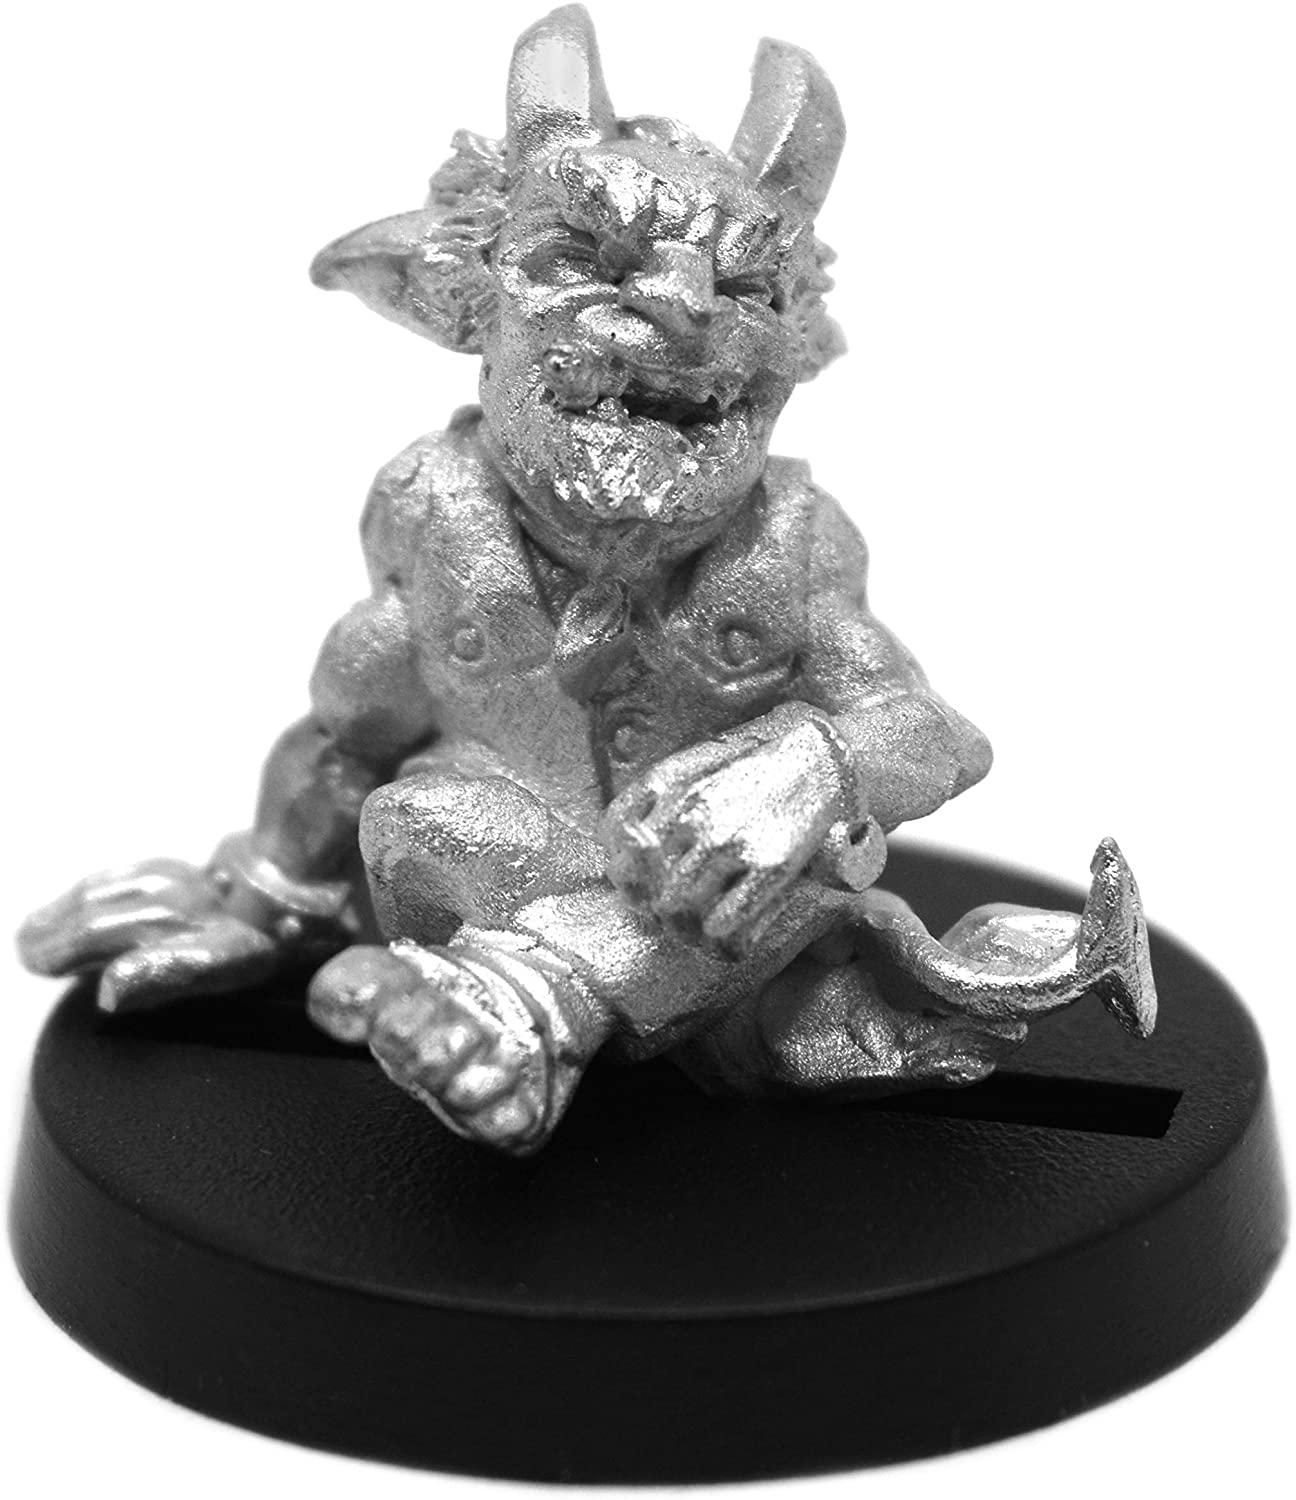 Stonehaven Male Dwarven Teifling Miniature Figure (for 28mm Scale Table Top War Games) - Made in US